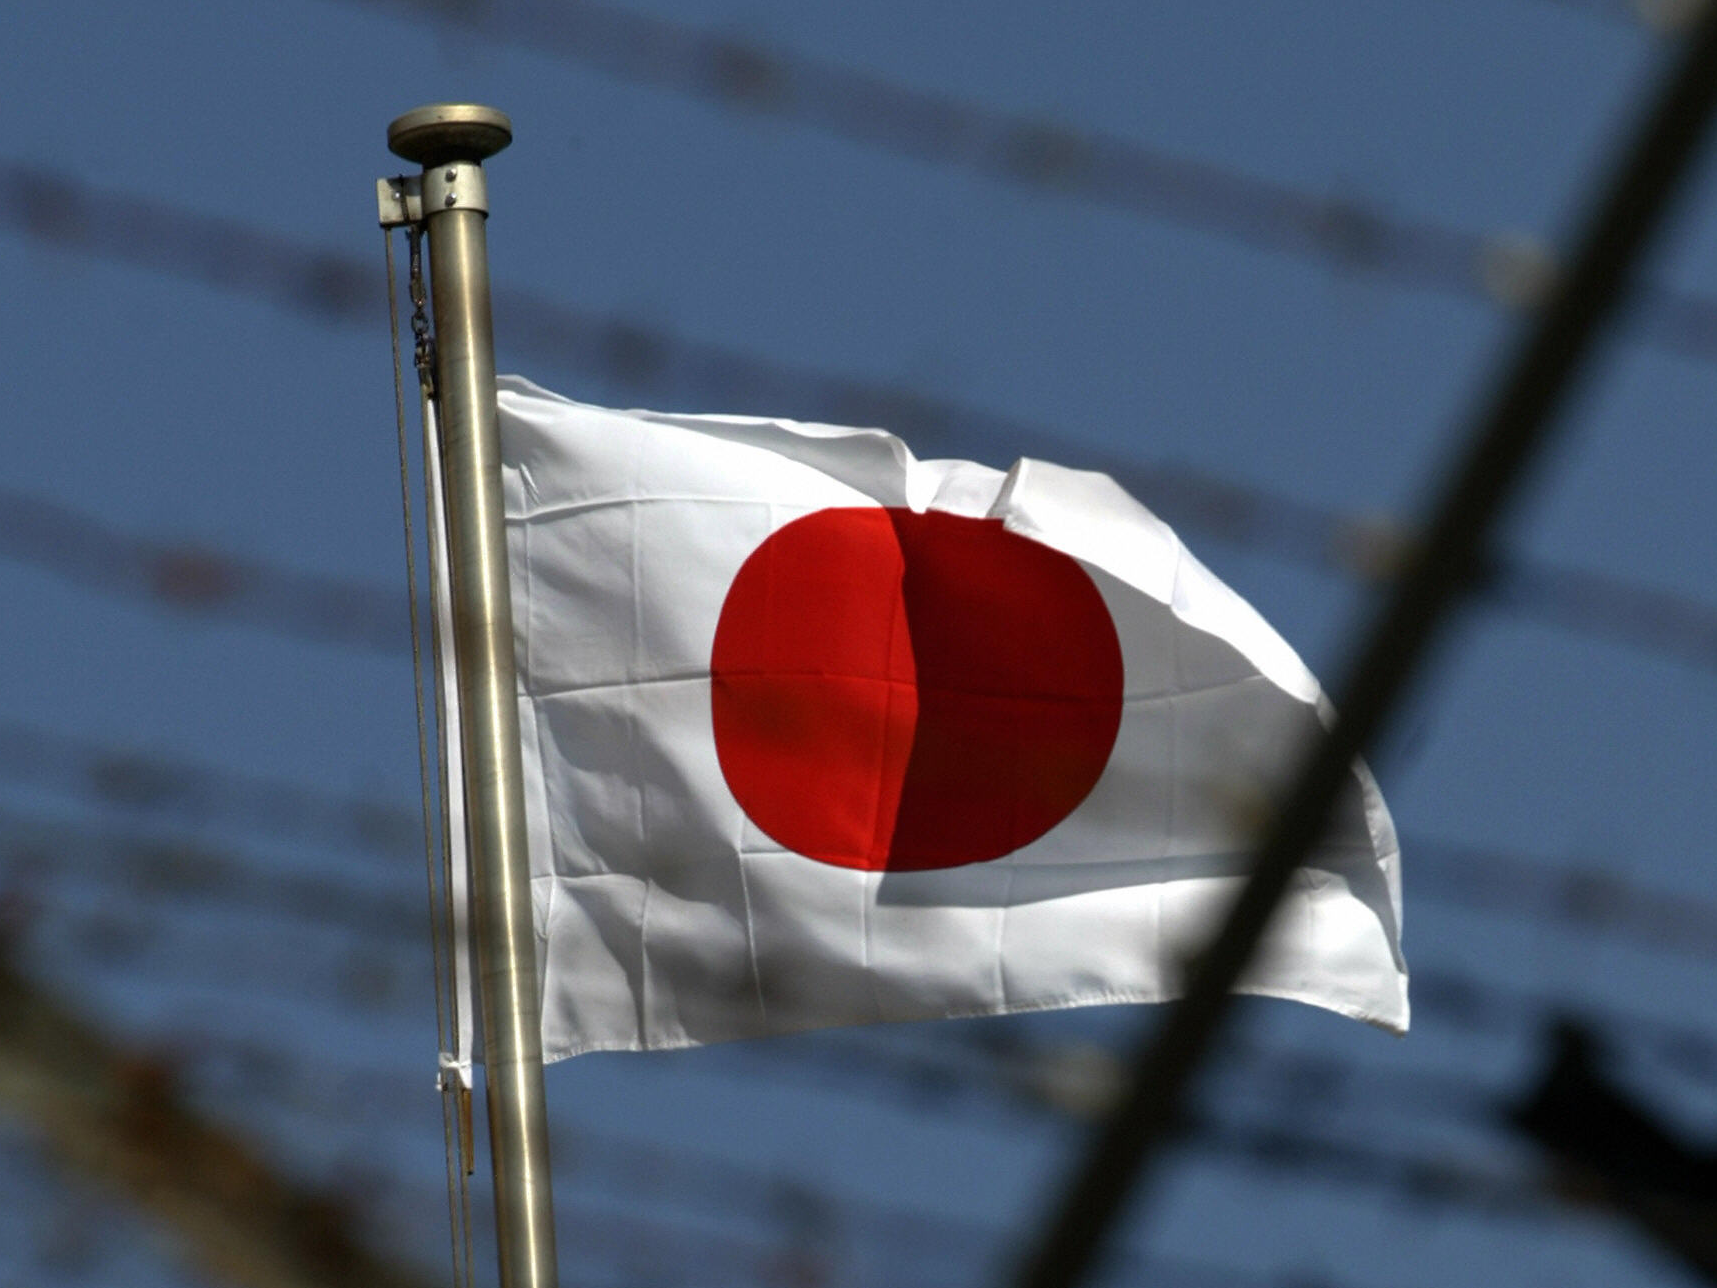 No Entry How Japan S Shockingly Low Refugee Intake Is Shaped By The Paradox Of Isolation A Demographic Time Bomb And The Fear Of North Korea Fullact Trendi Japan North Korea Refugee